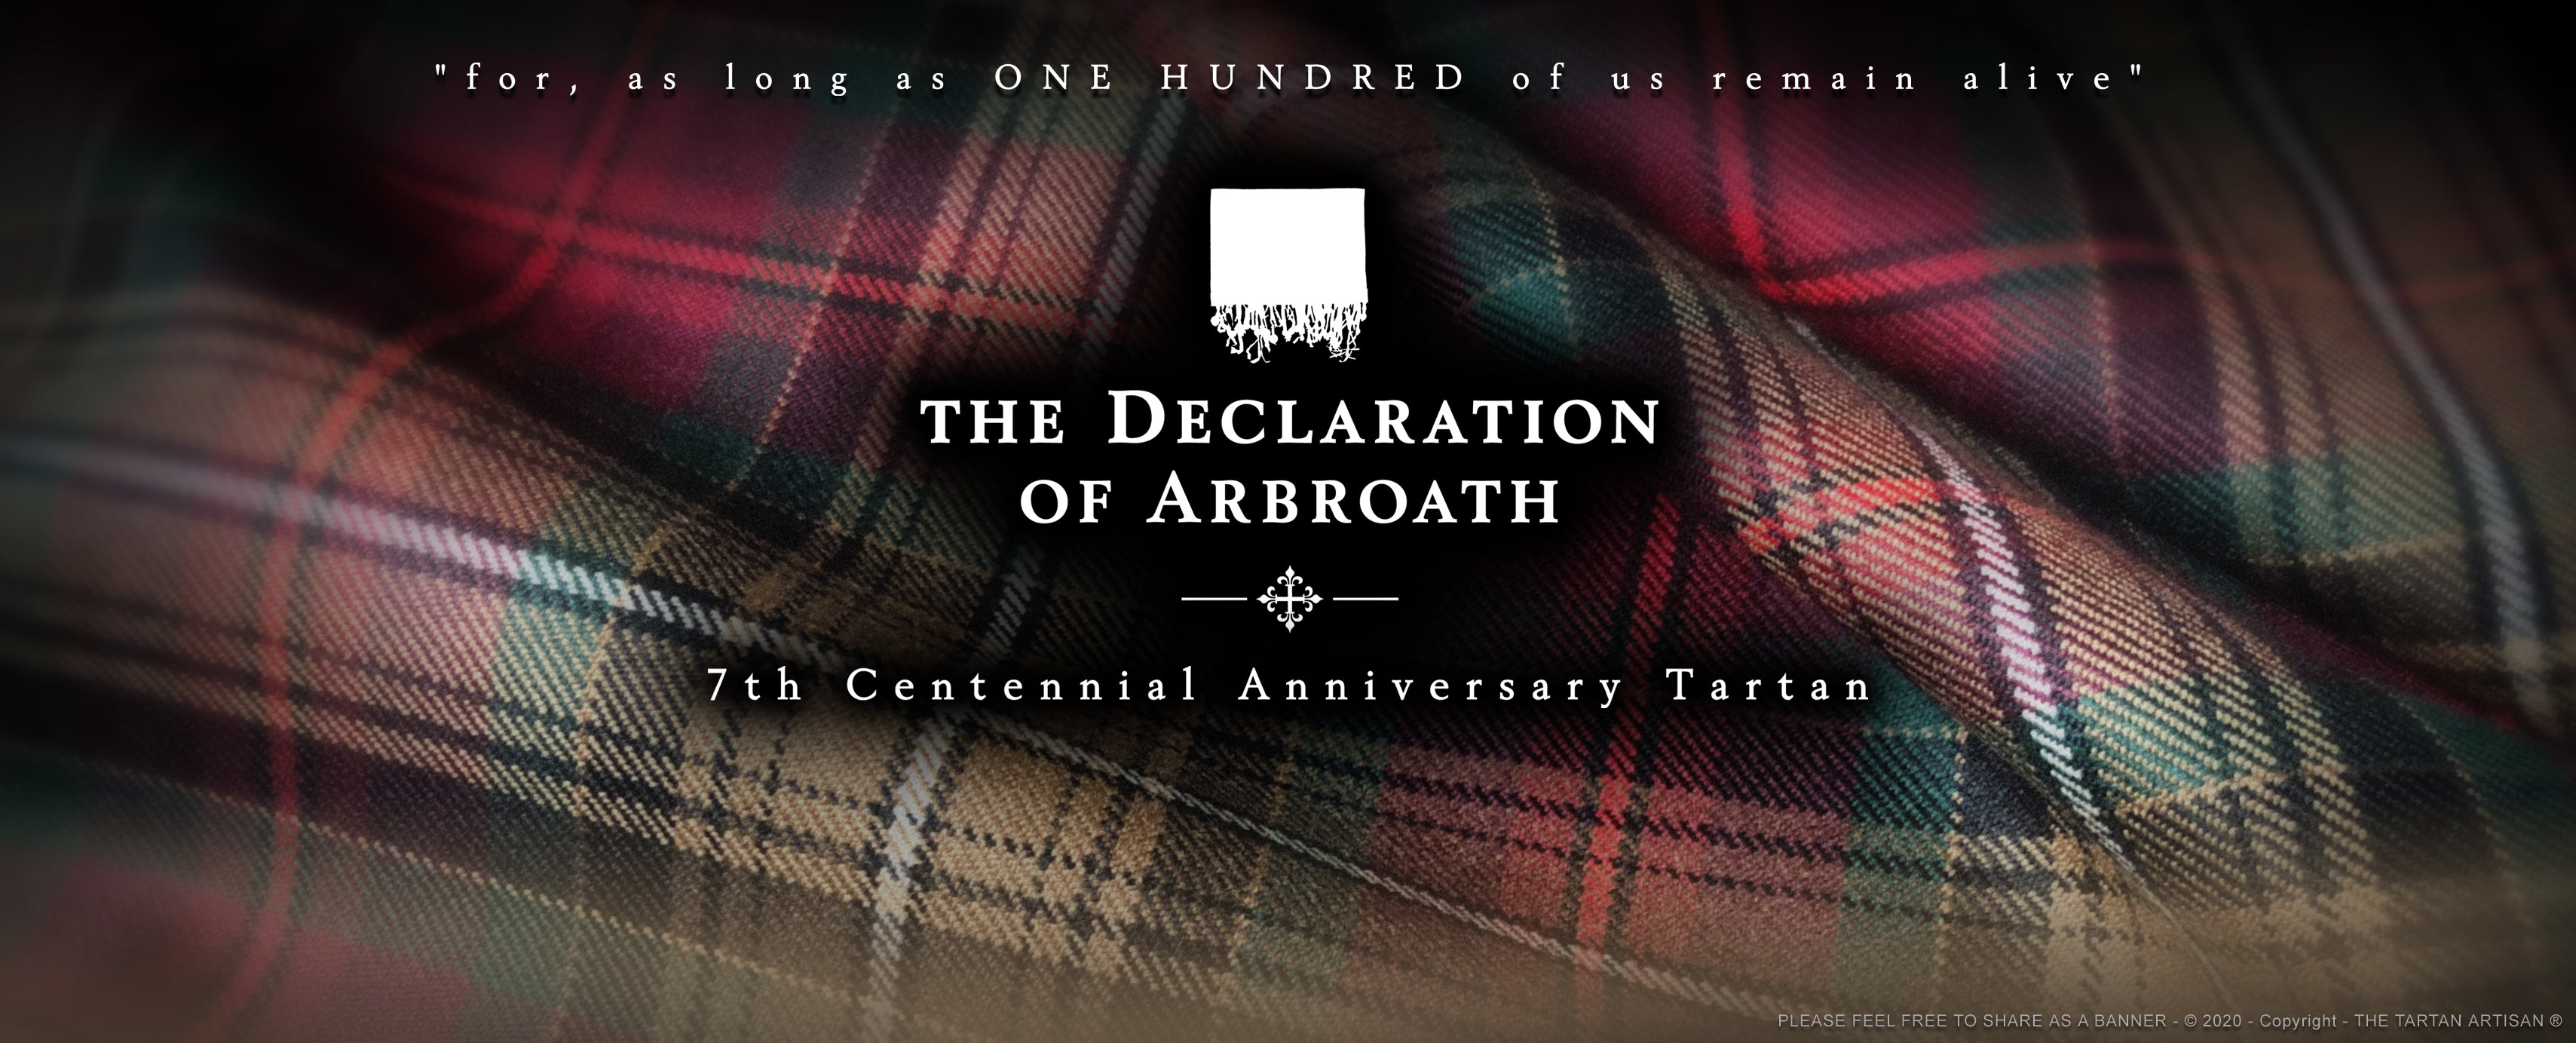 DECLARATION OF ARBROATH 7th Centennial Anniversary tartan by Steven Patrick Sim the tartan artisan Scotland Arbroath